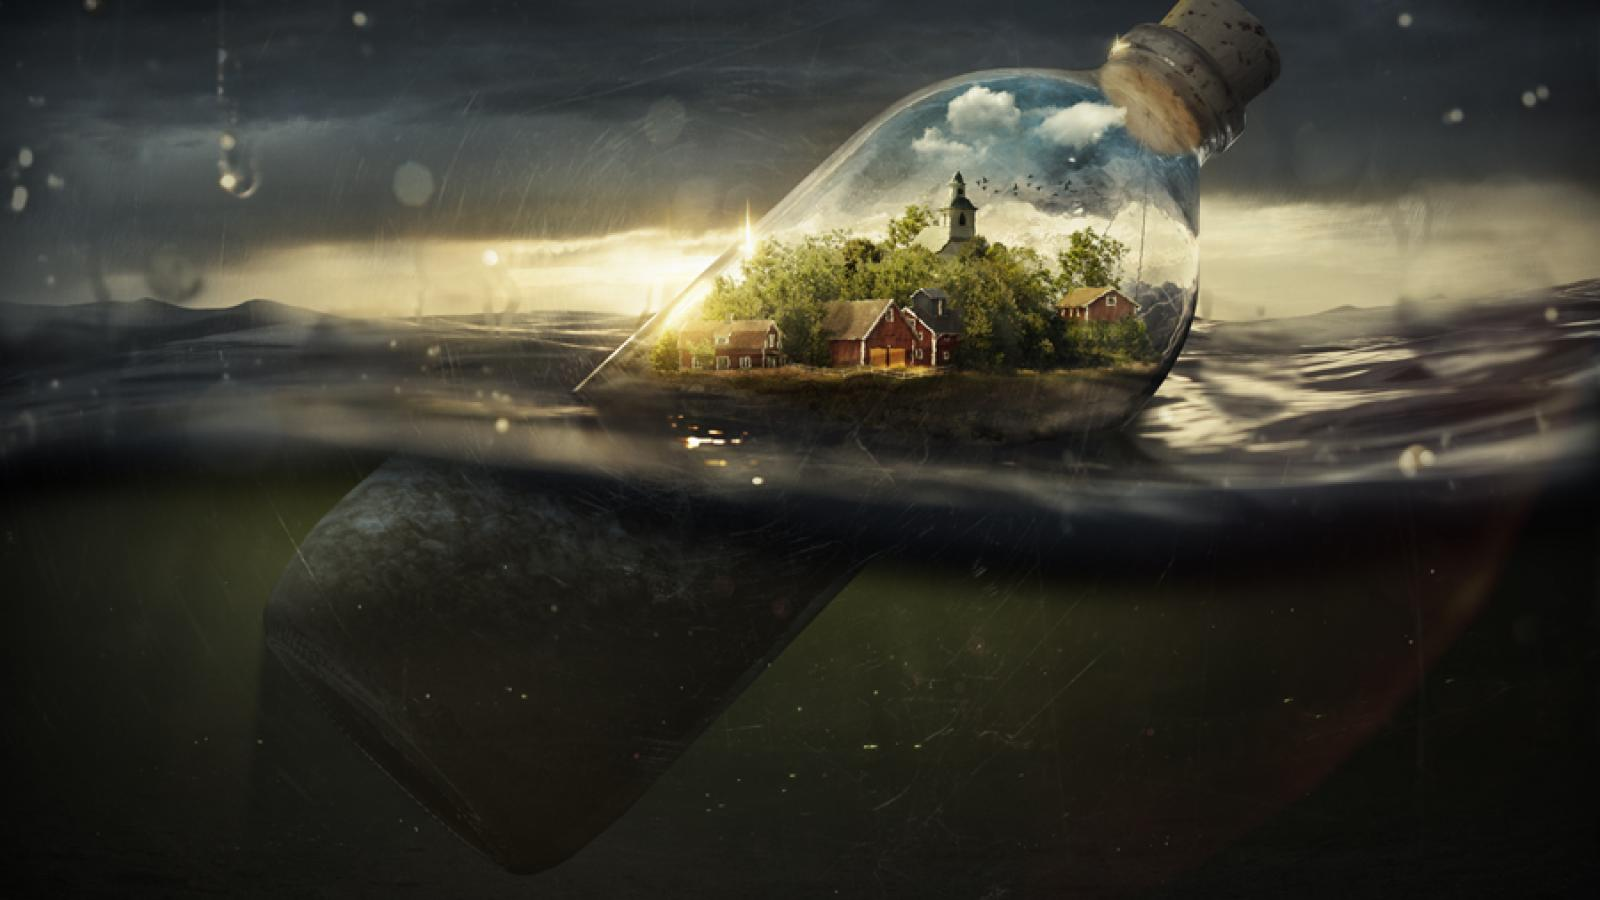 Erik Johansson Photo Manipulation Behind the Scenes